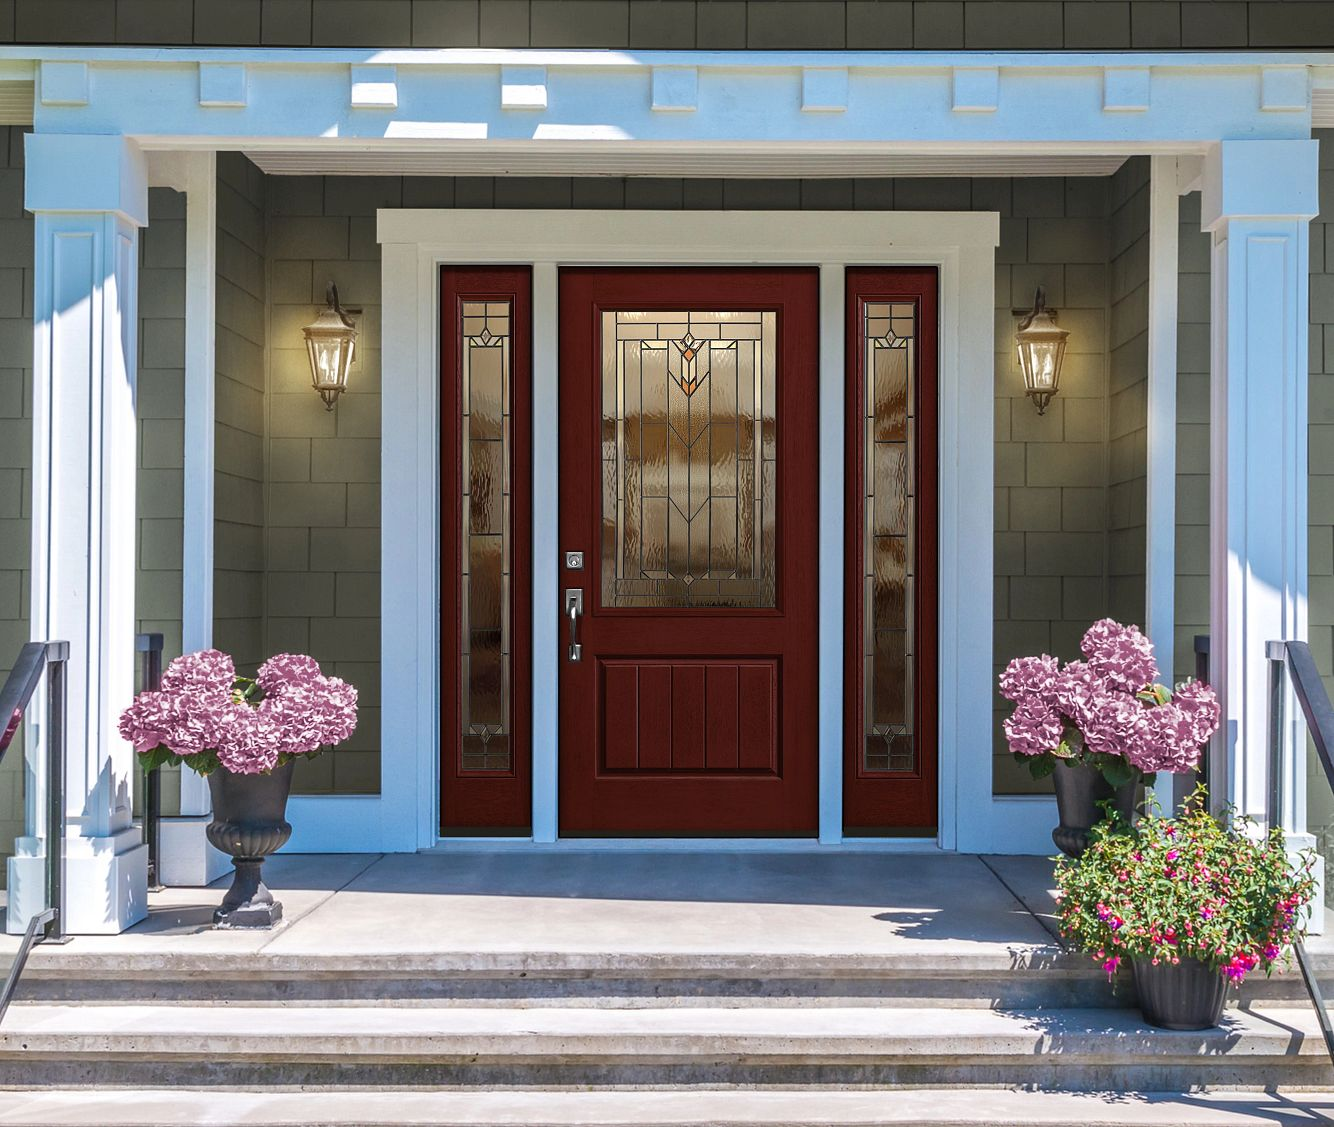 Wine-colored front door on a home with green siding